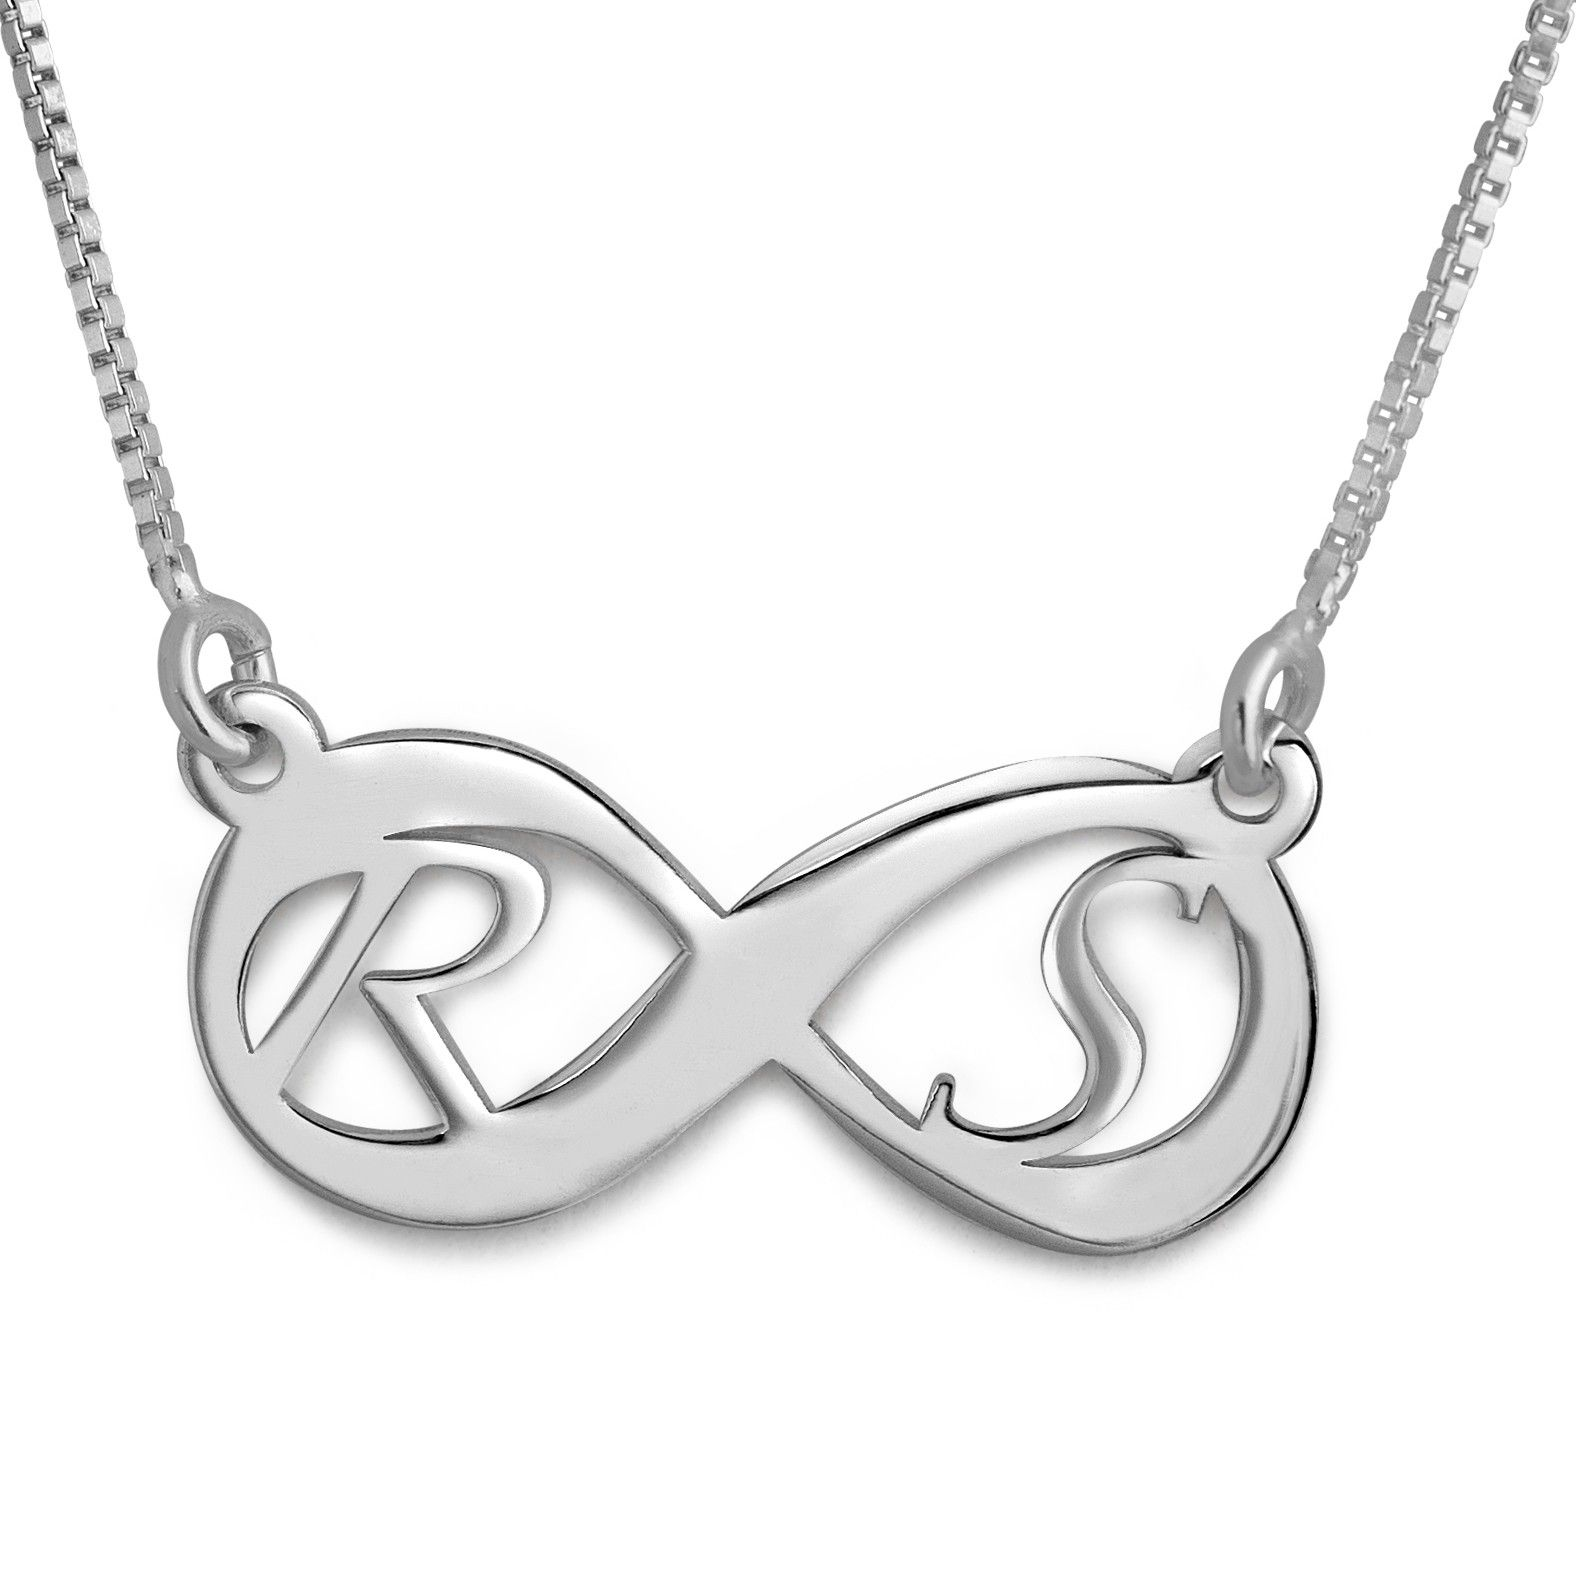 Feel amazing when you wear this double initial infinity necklace feel amazing when you wear this double initial infinity necklace use your own initials or mozeypictures Images